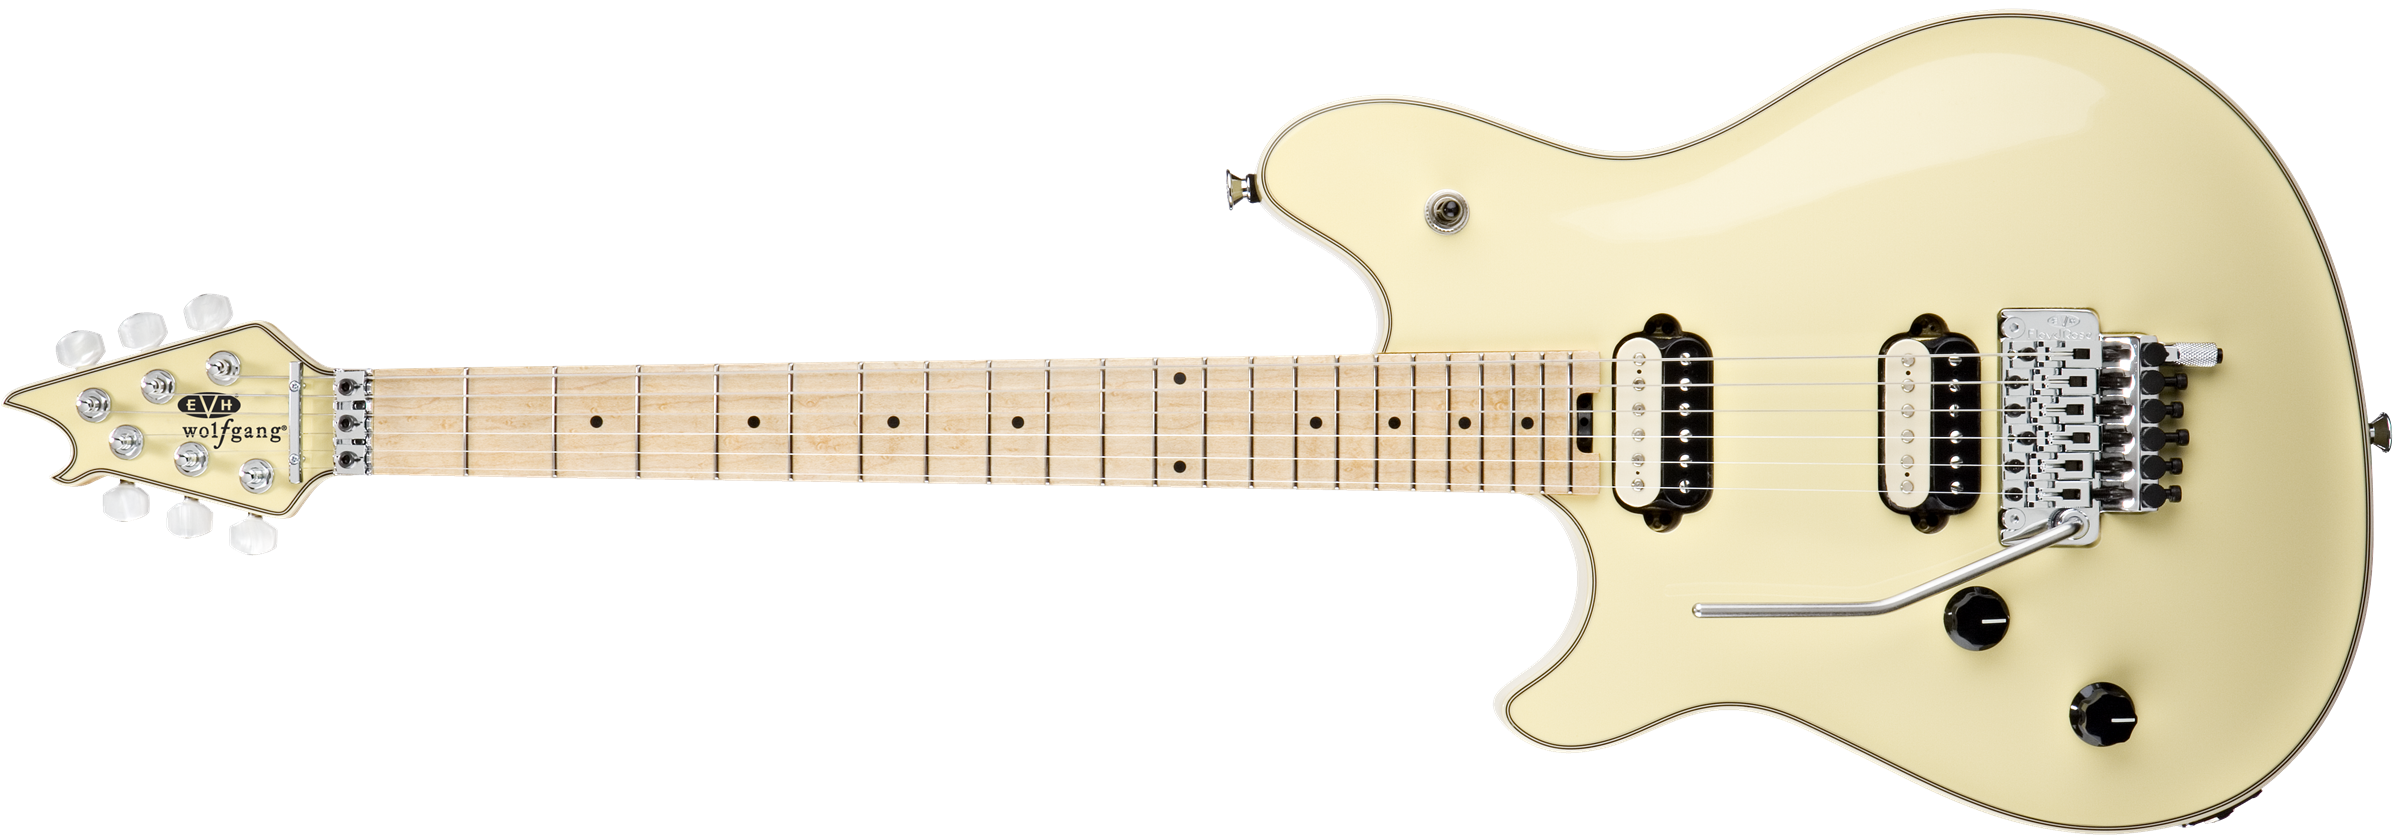 EVH® Wolfgang® USA Left Hand, Birdseye Maple Fingerboard, Vintage White